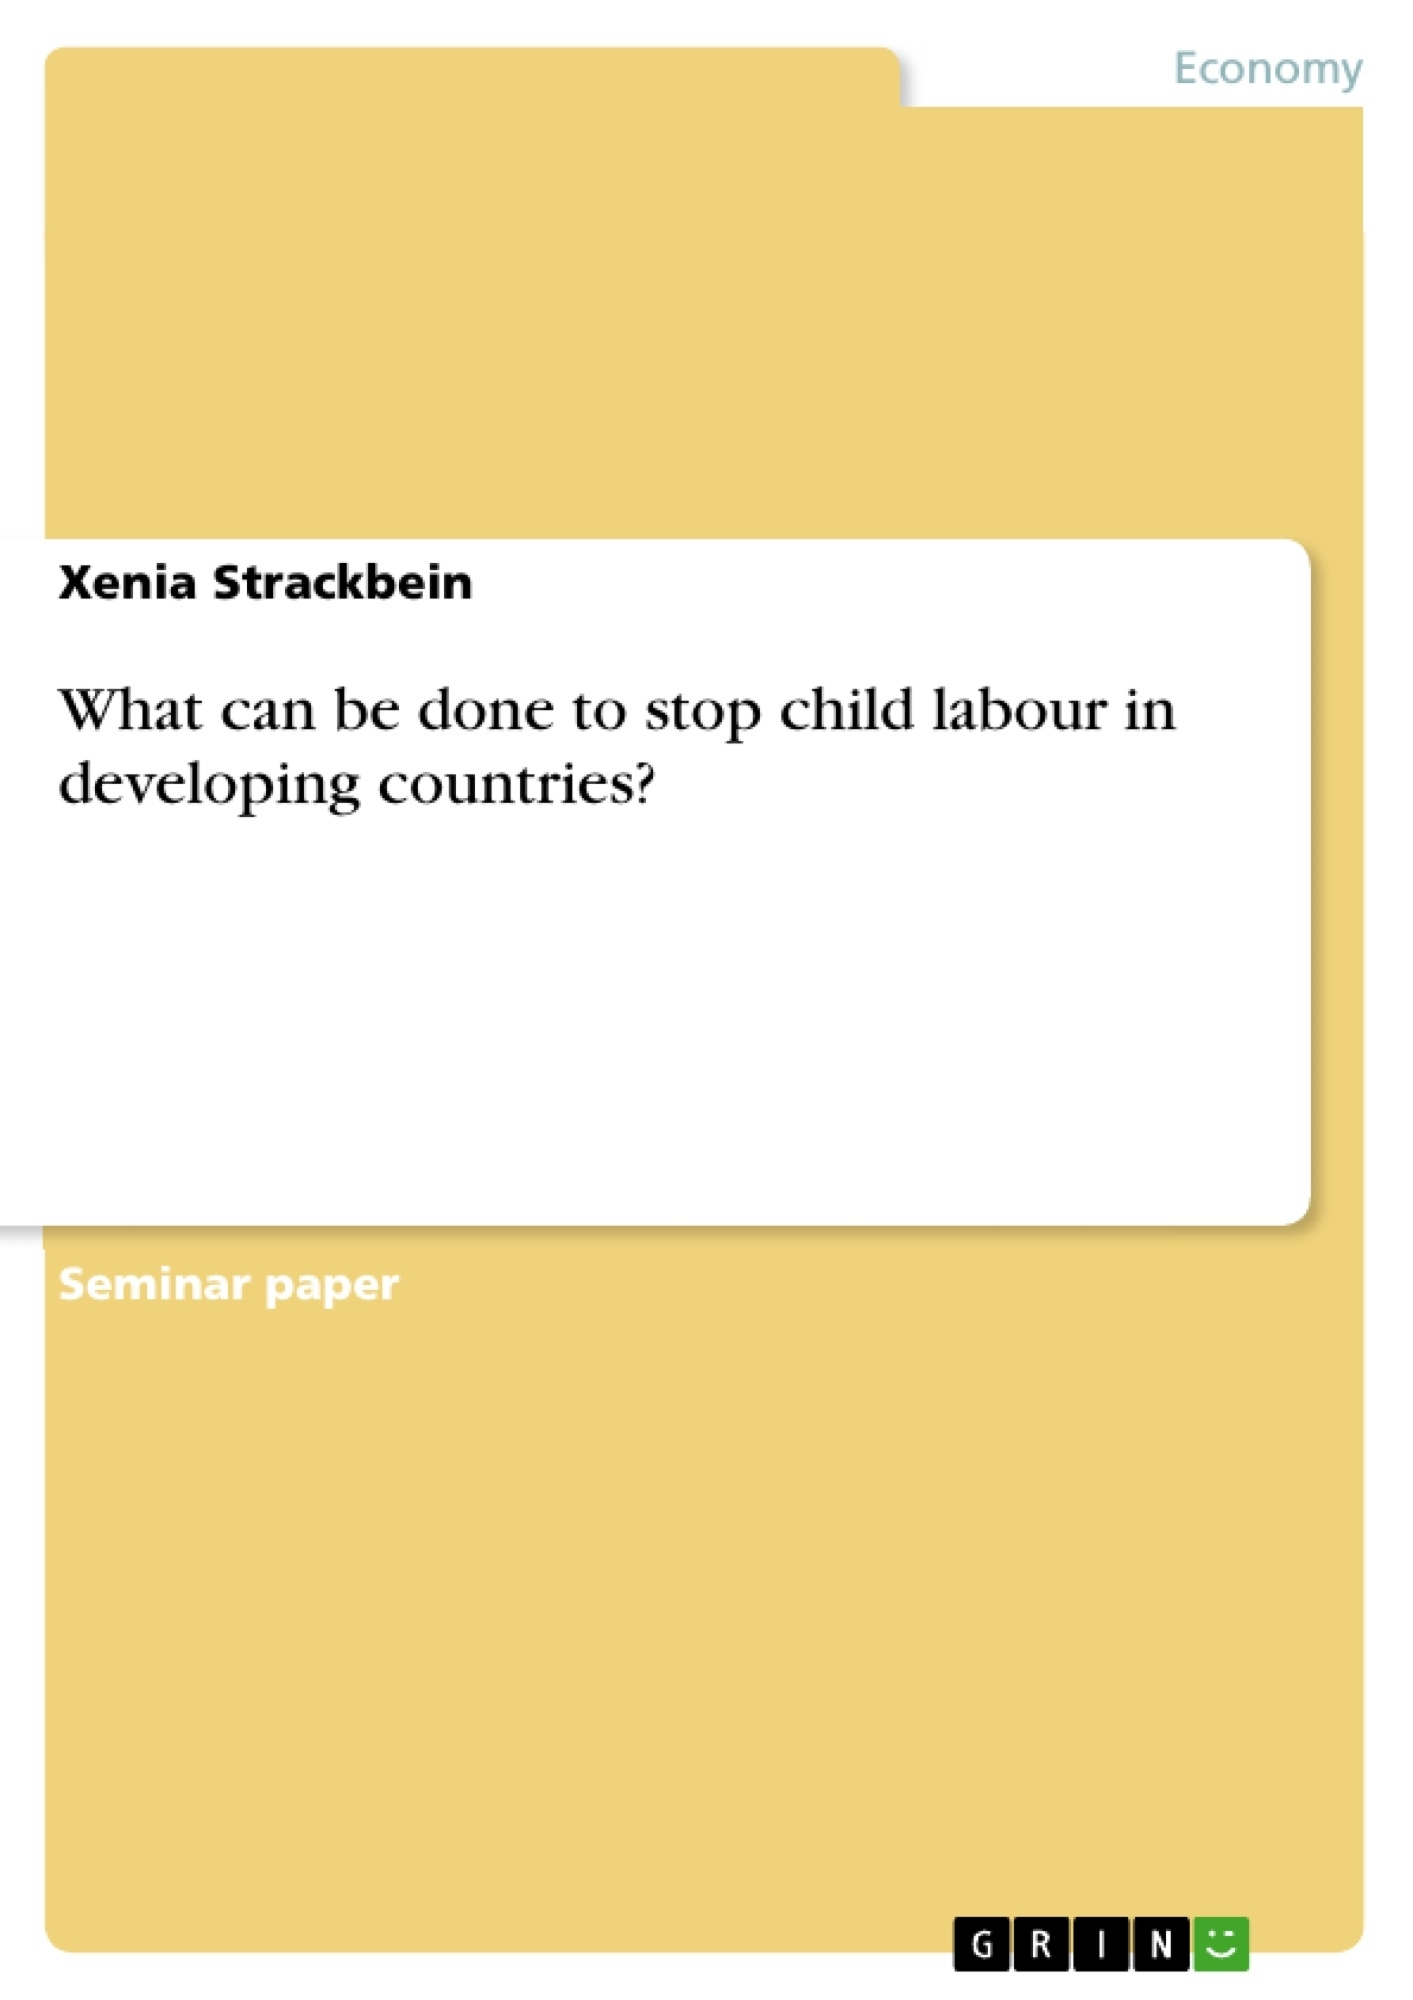 Title: What can be done to stop child labour in developing countries?